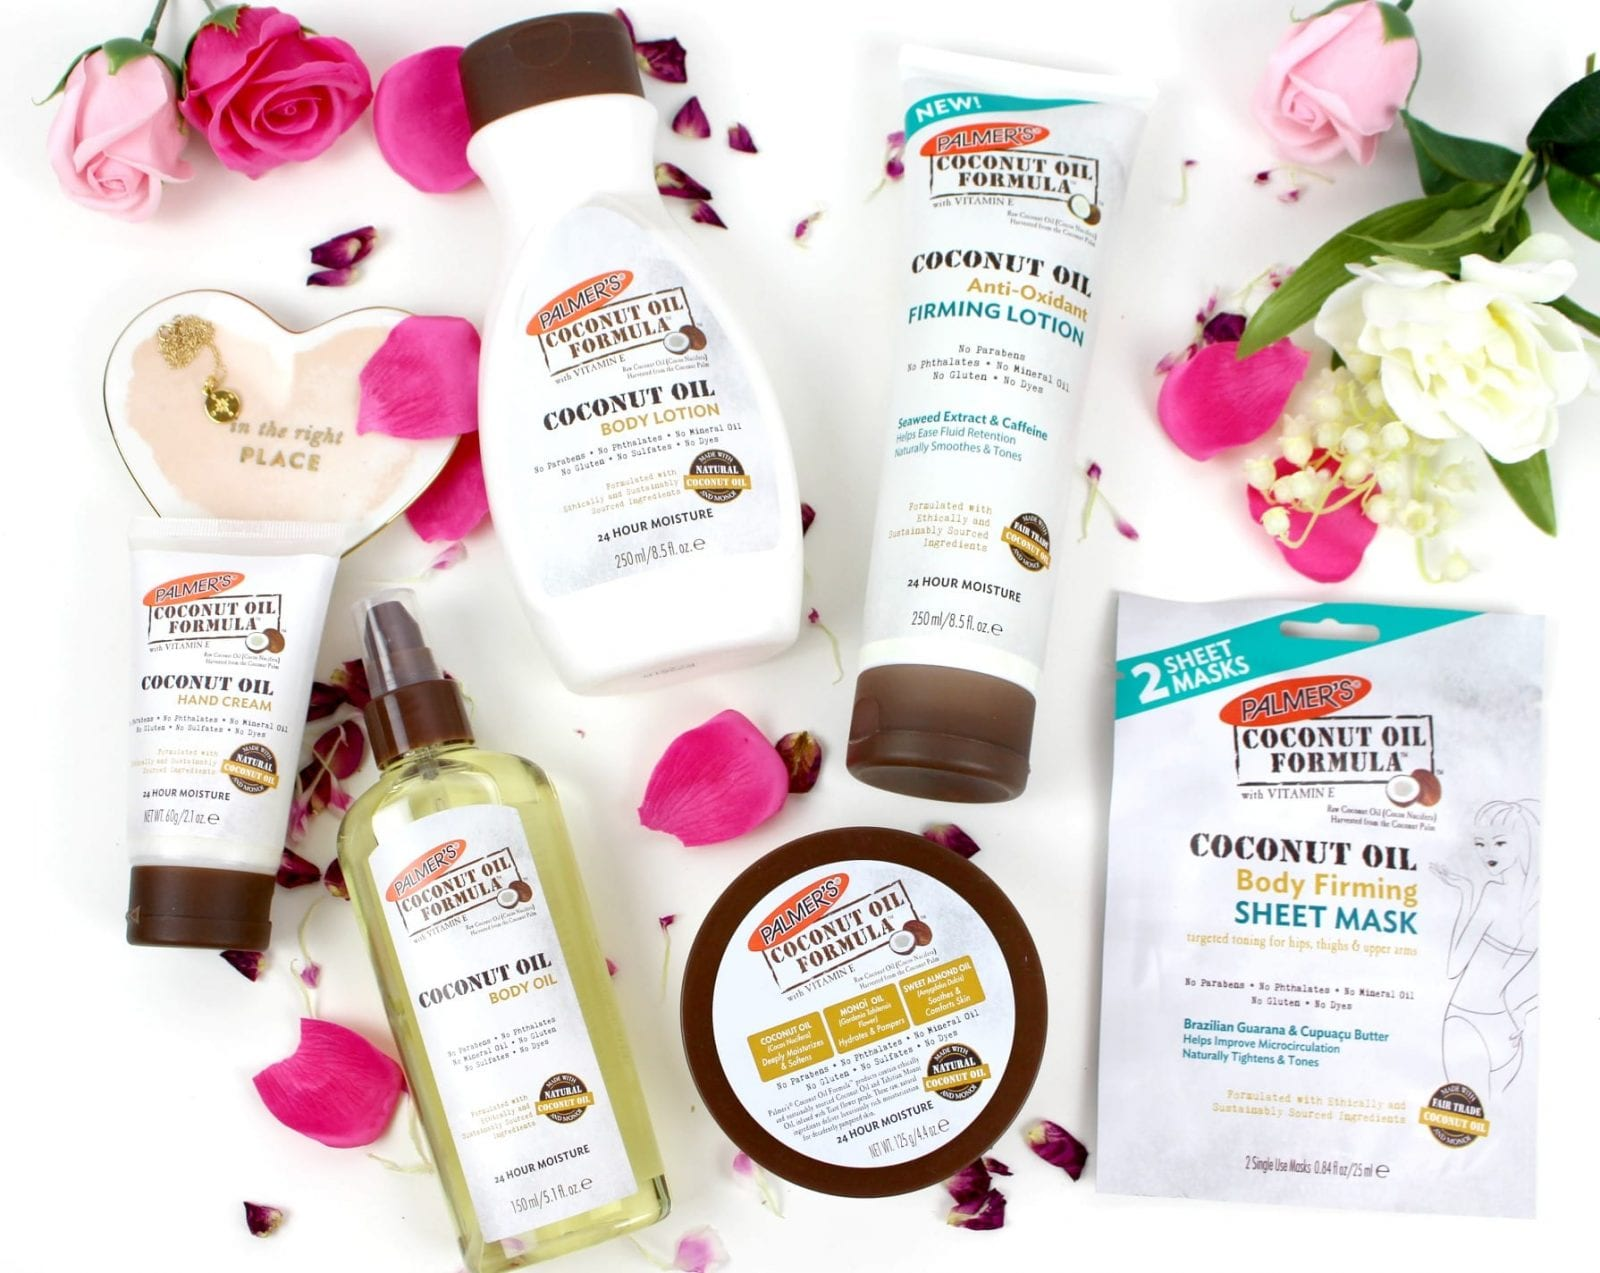 This is a beautiful flatlay of the Palmer's Coconut Oil product line, including the new firming products.